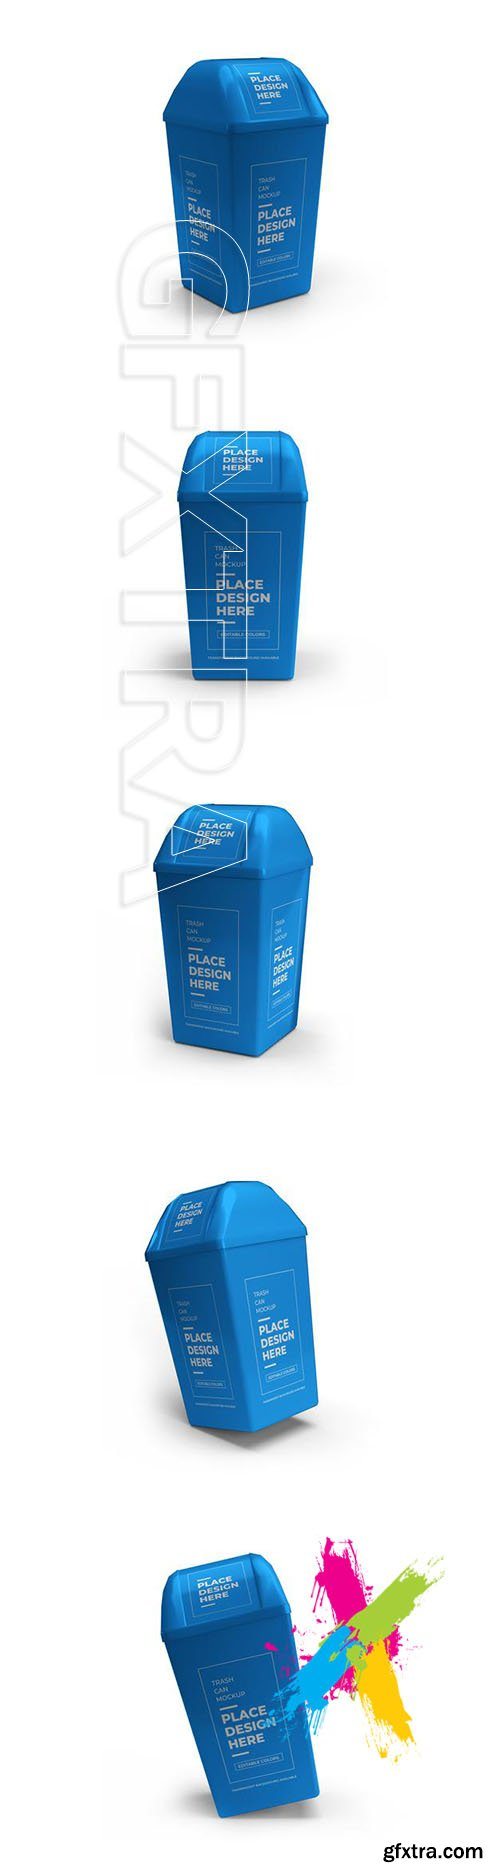 Trash can mockup